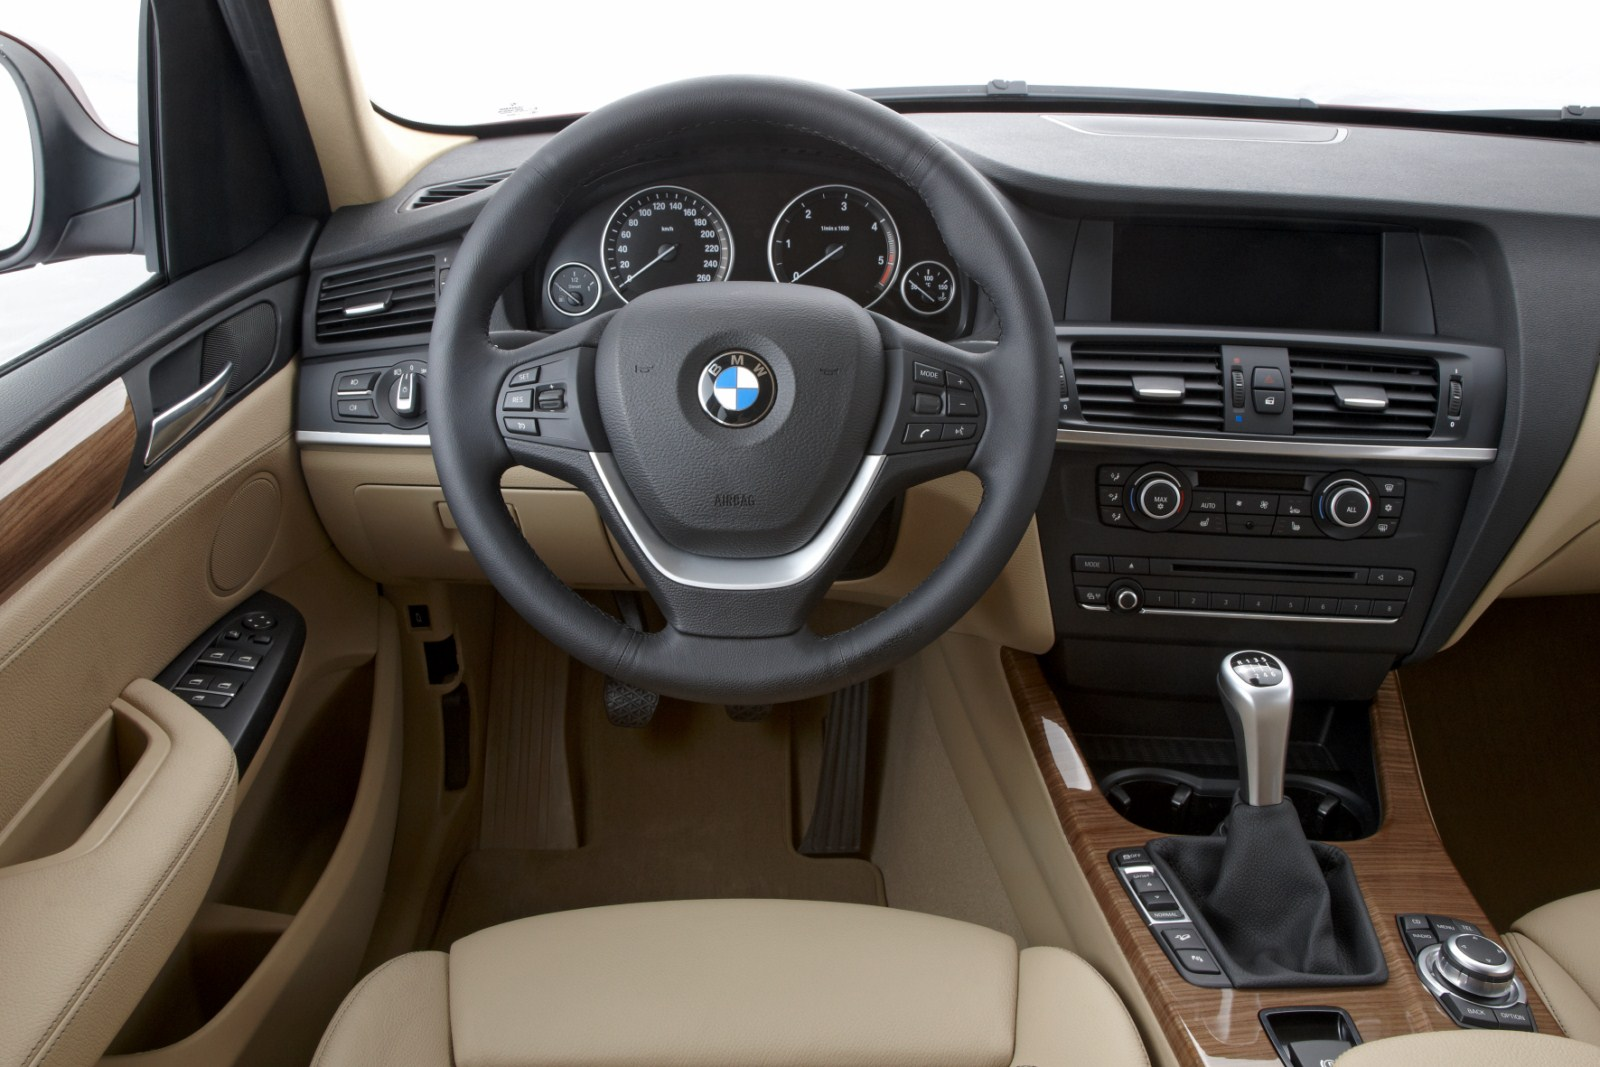 Interieur X6 Bmw The New 2011 Bmw X3 Interior Explained